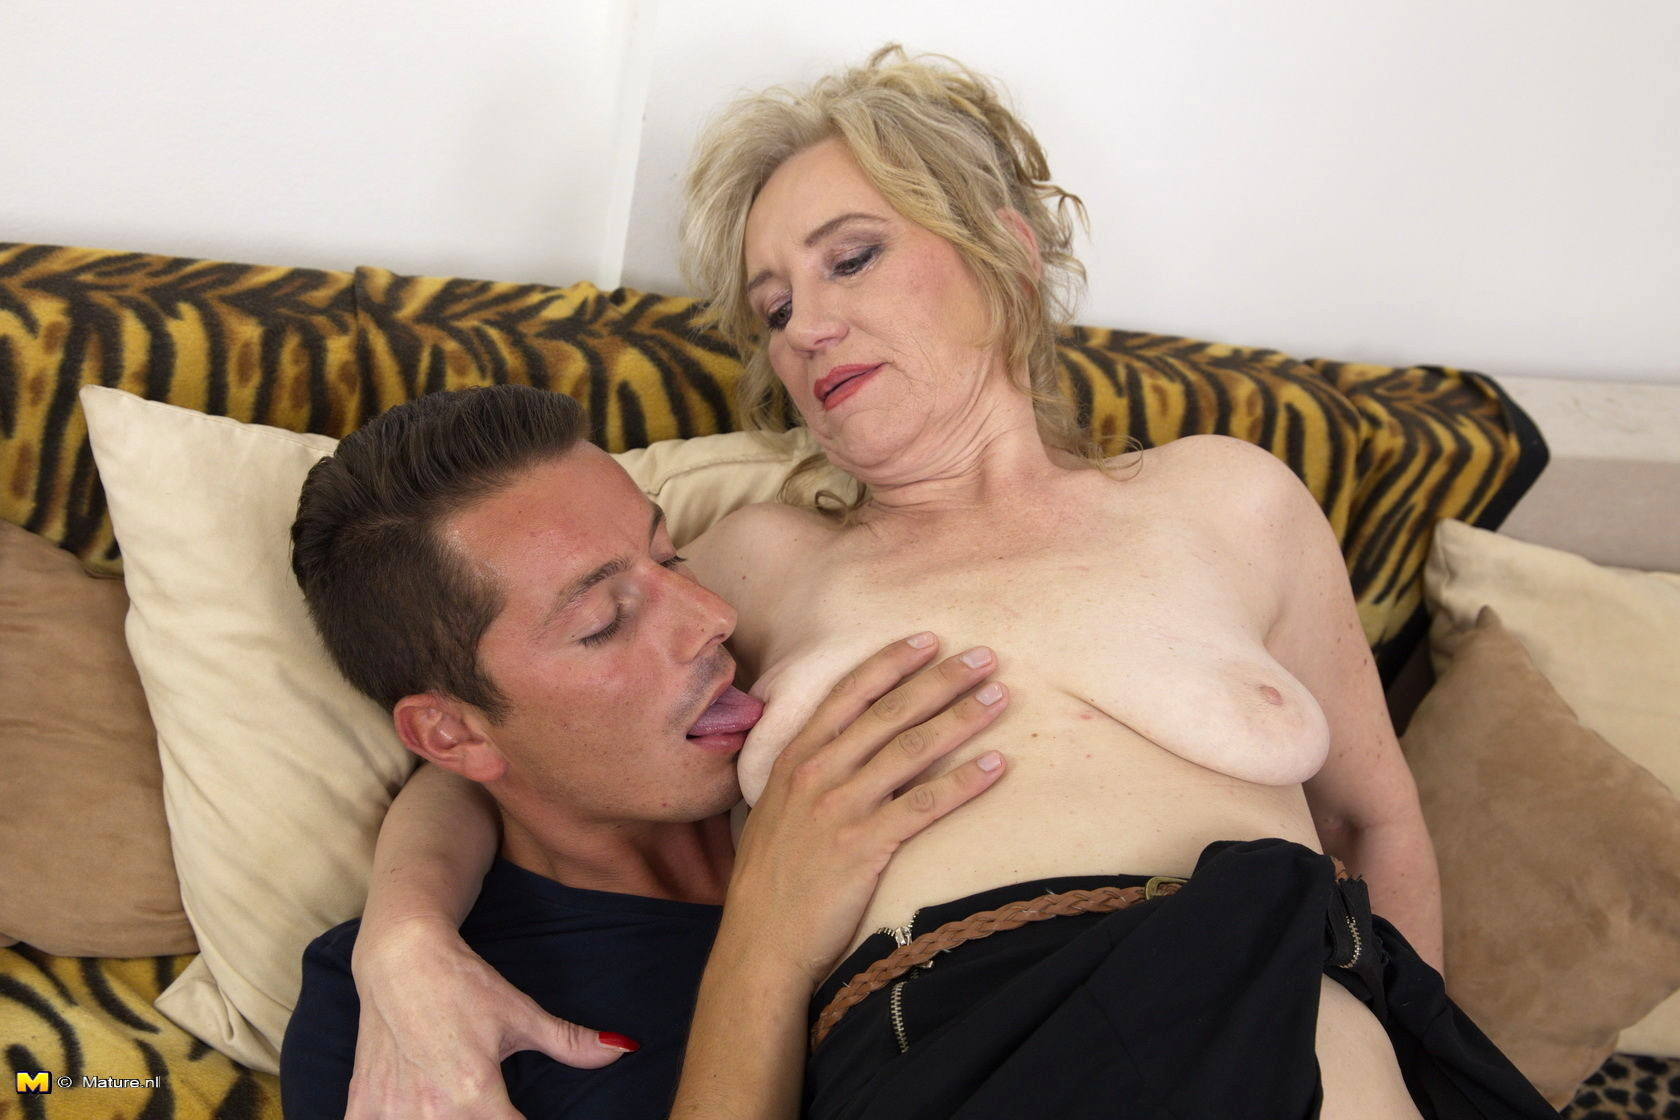 Mature lady gives passionate